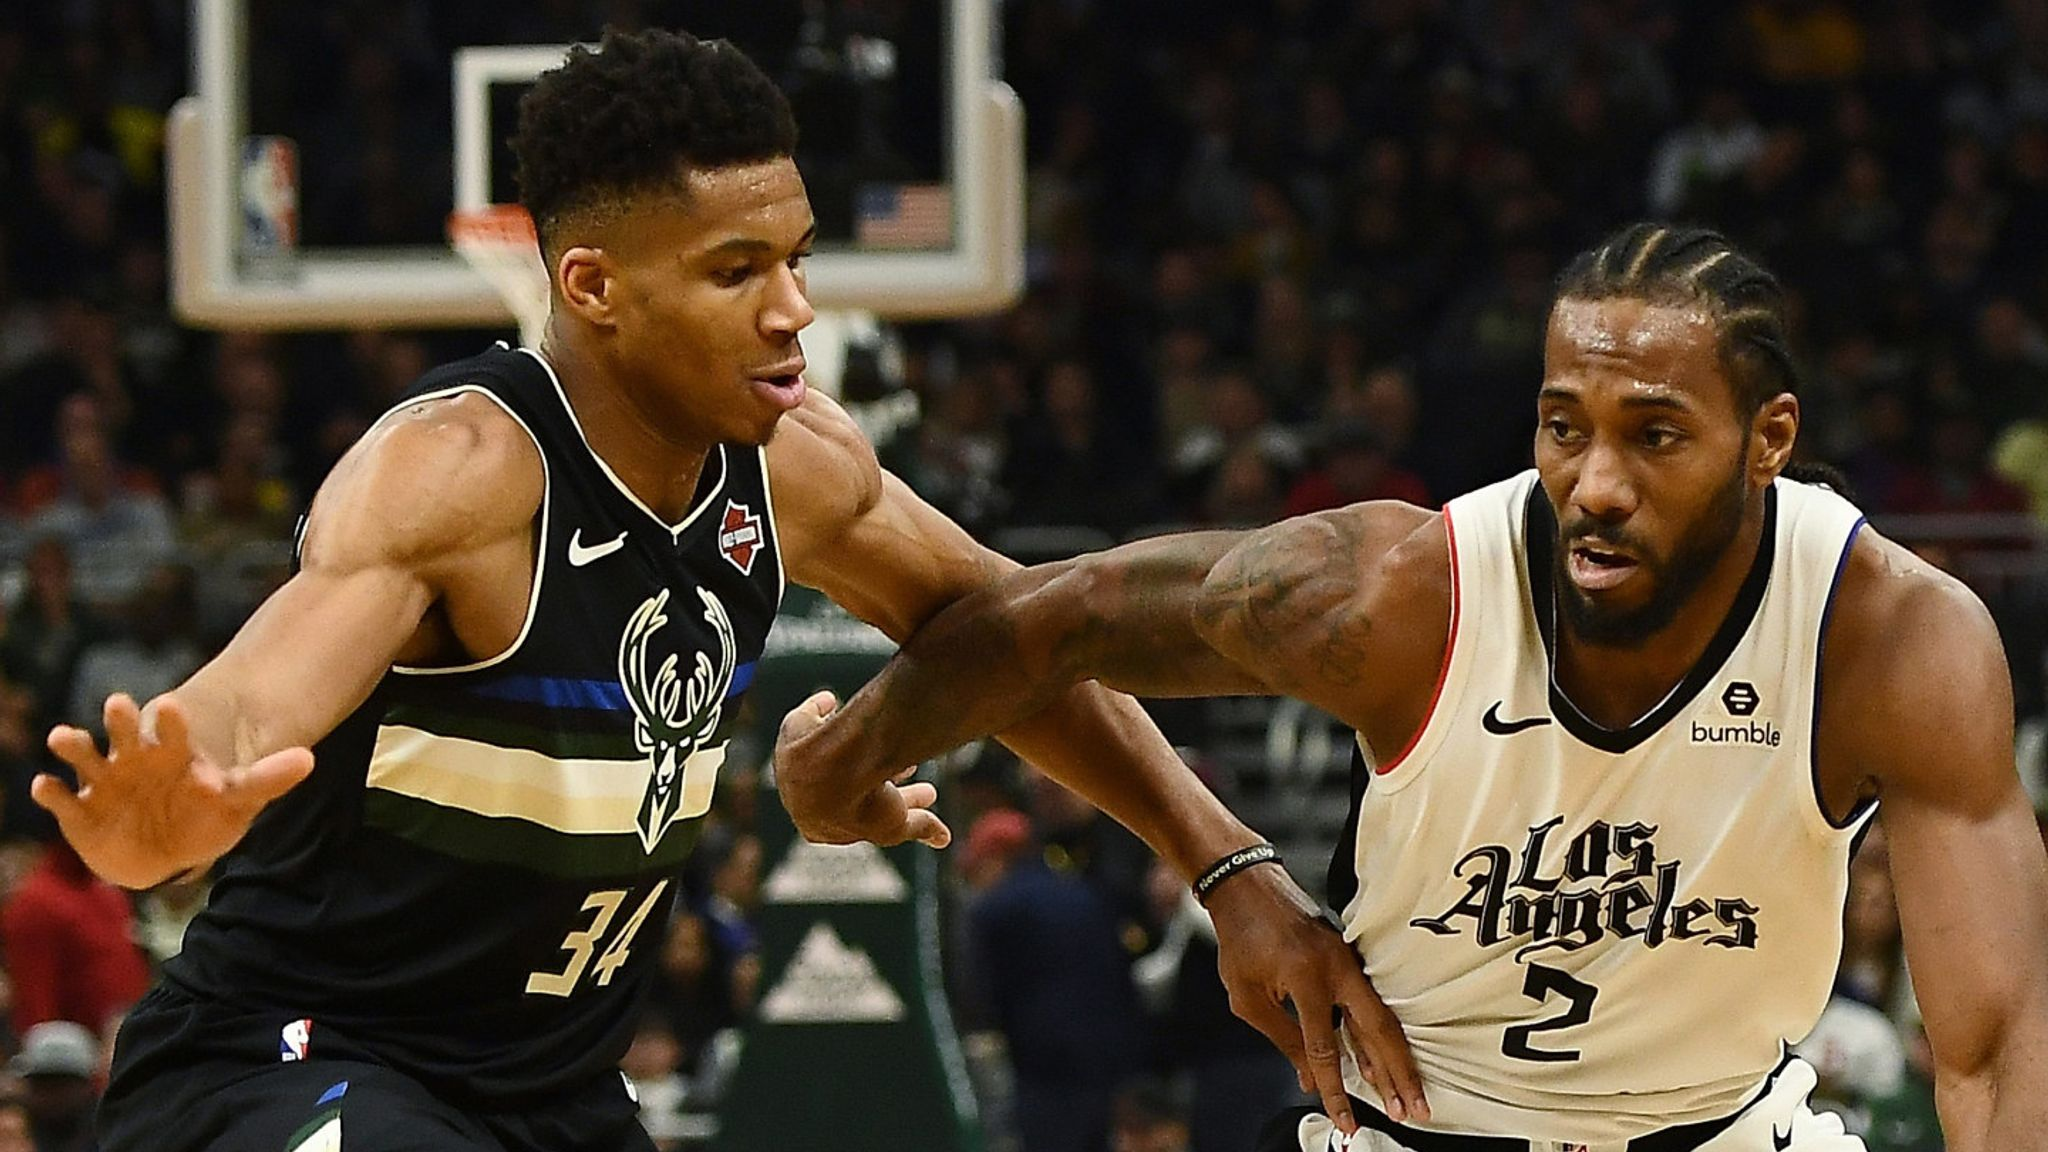 Milwaukee Bucks blow out LA Clippers to extend win streak to 14 games